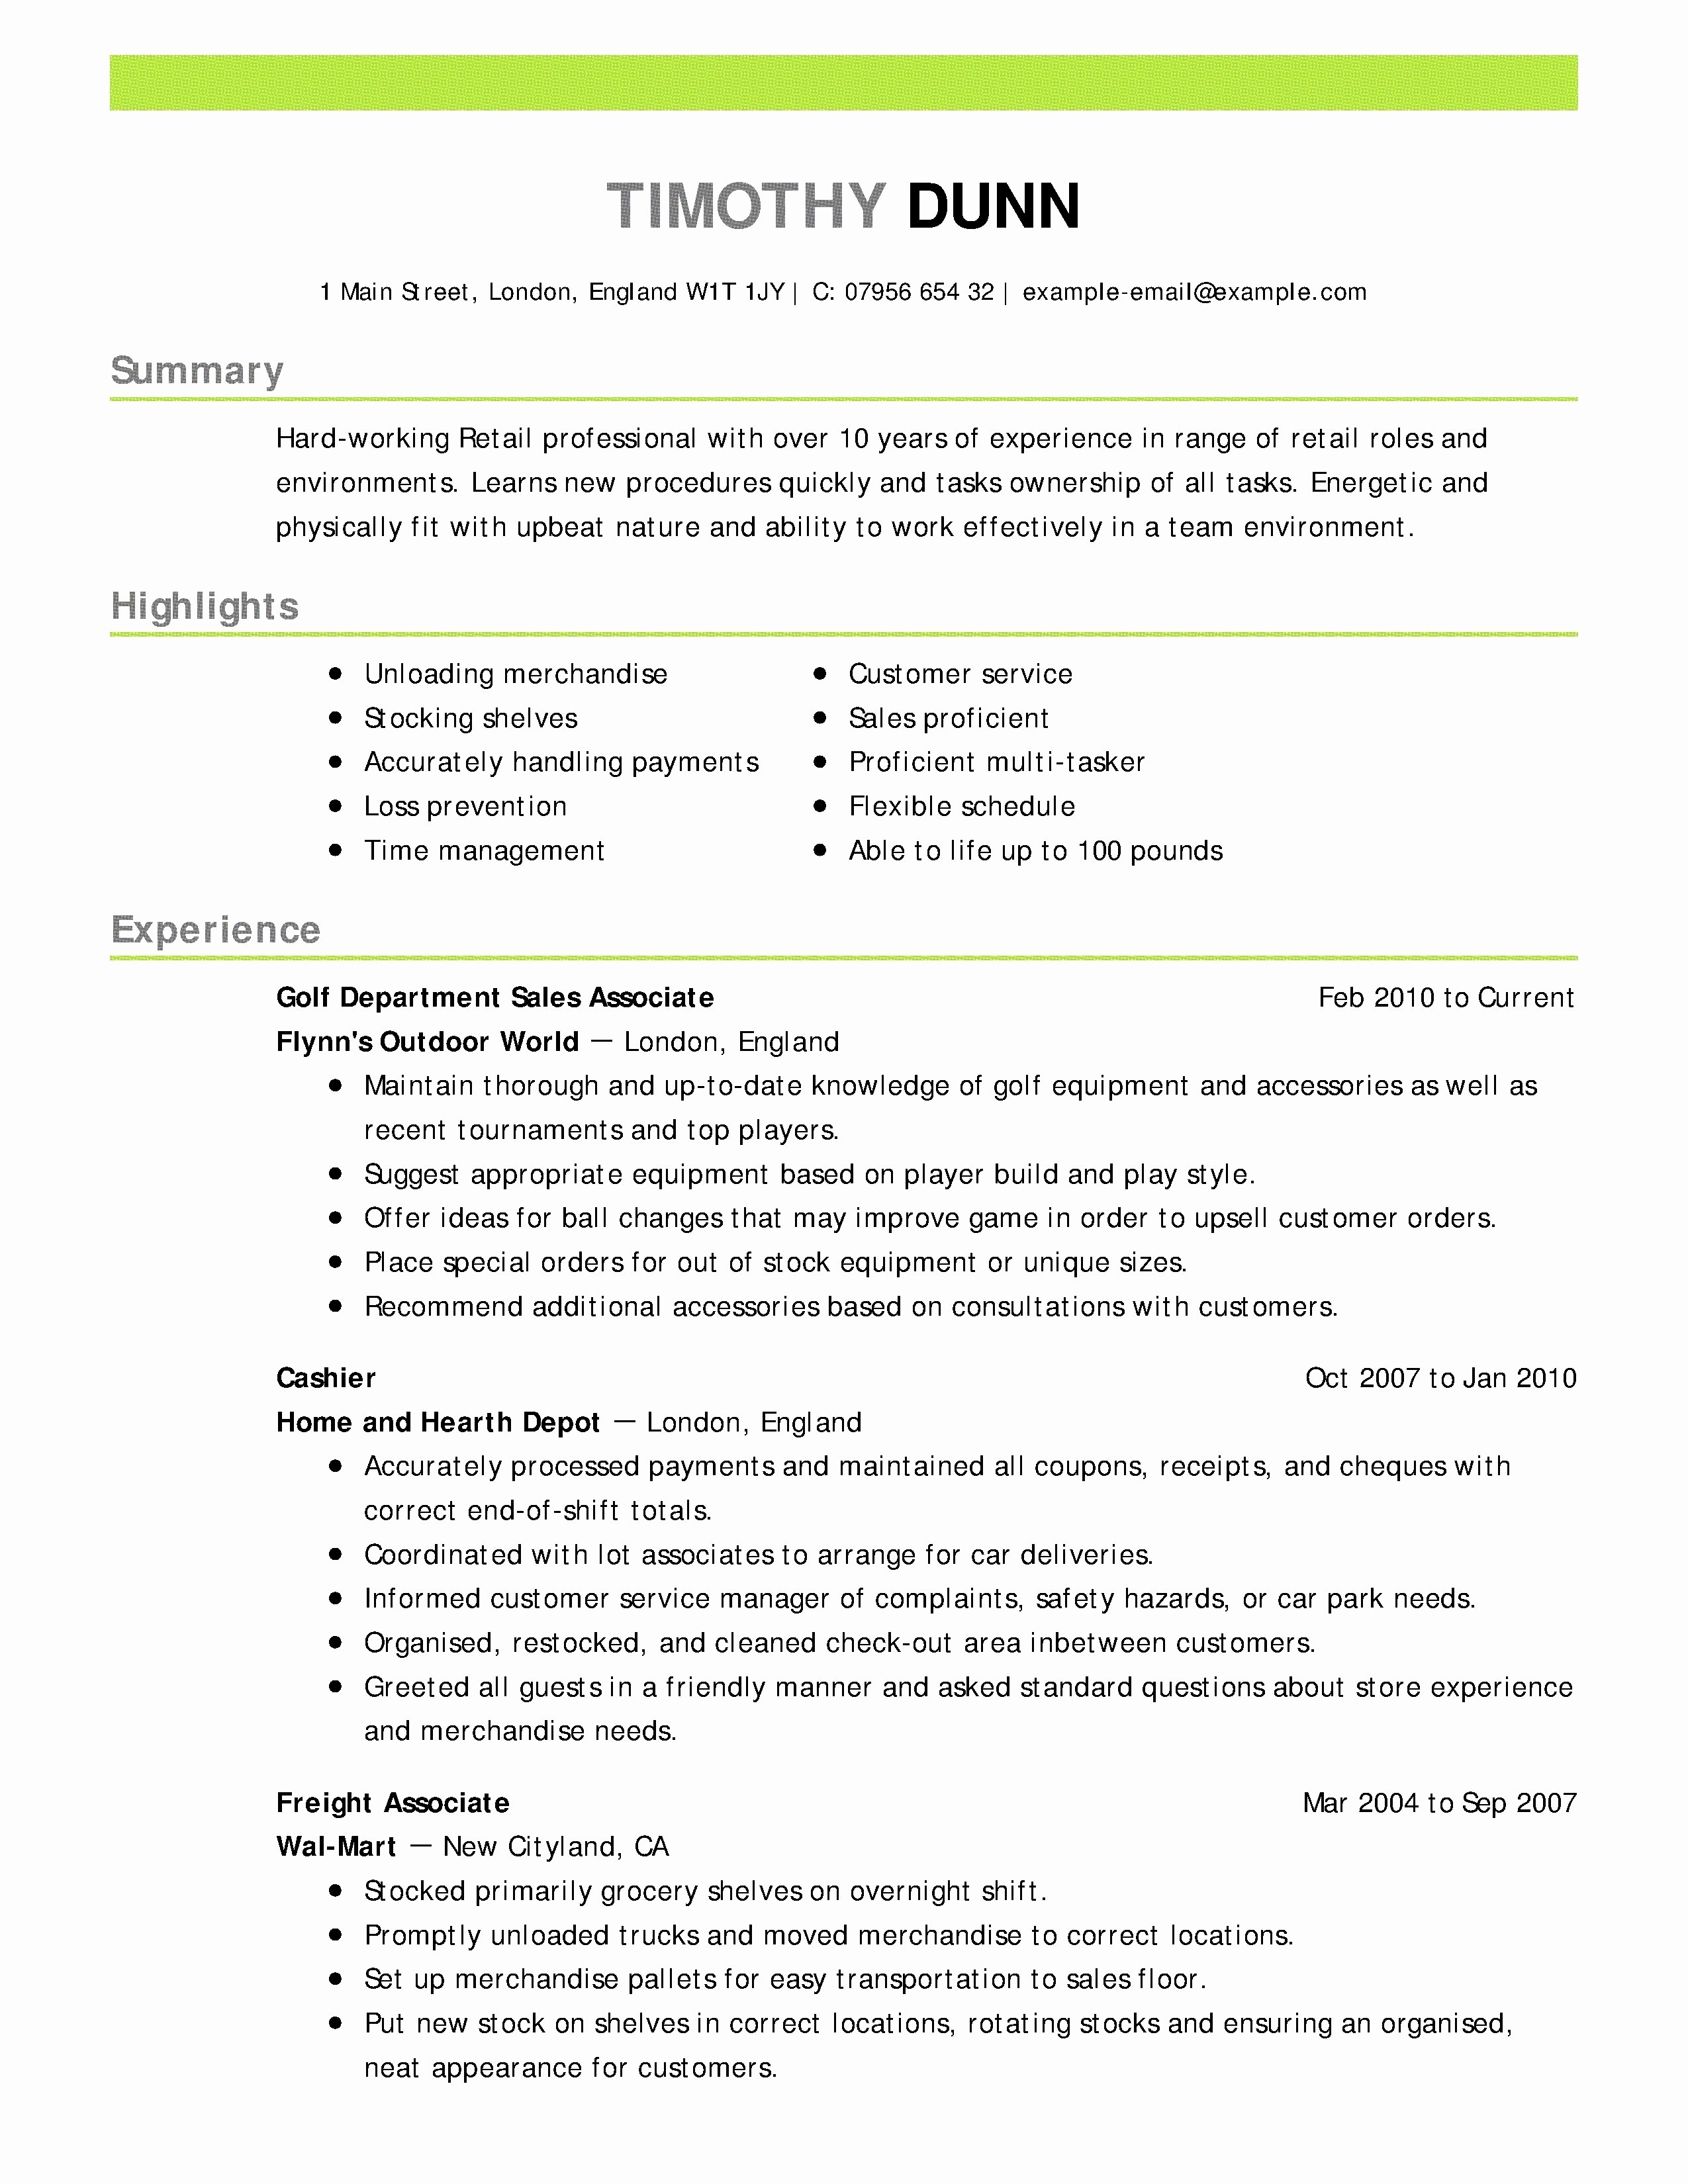 Career Change Objective Statement - 25 Fresh Good Resume Objective Statement